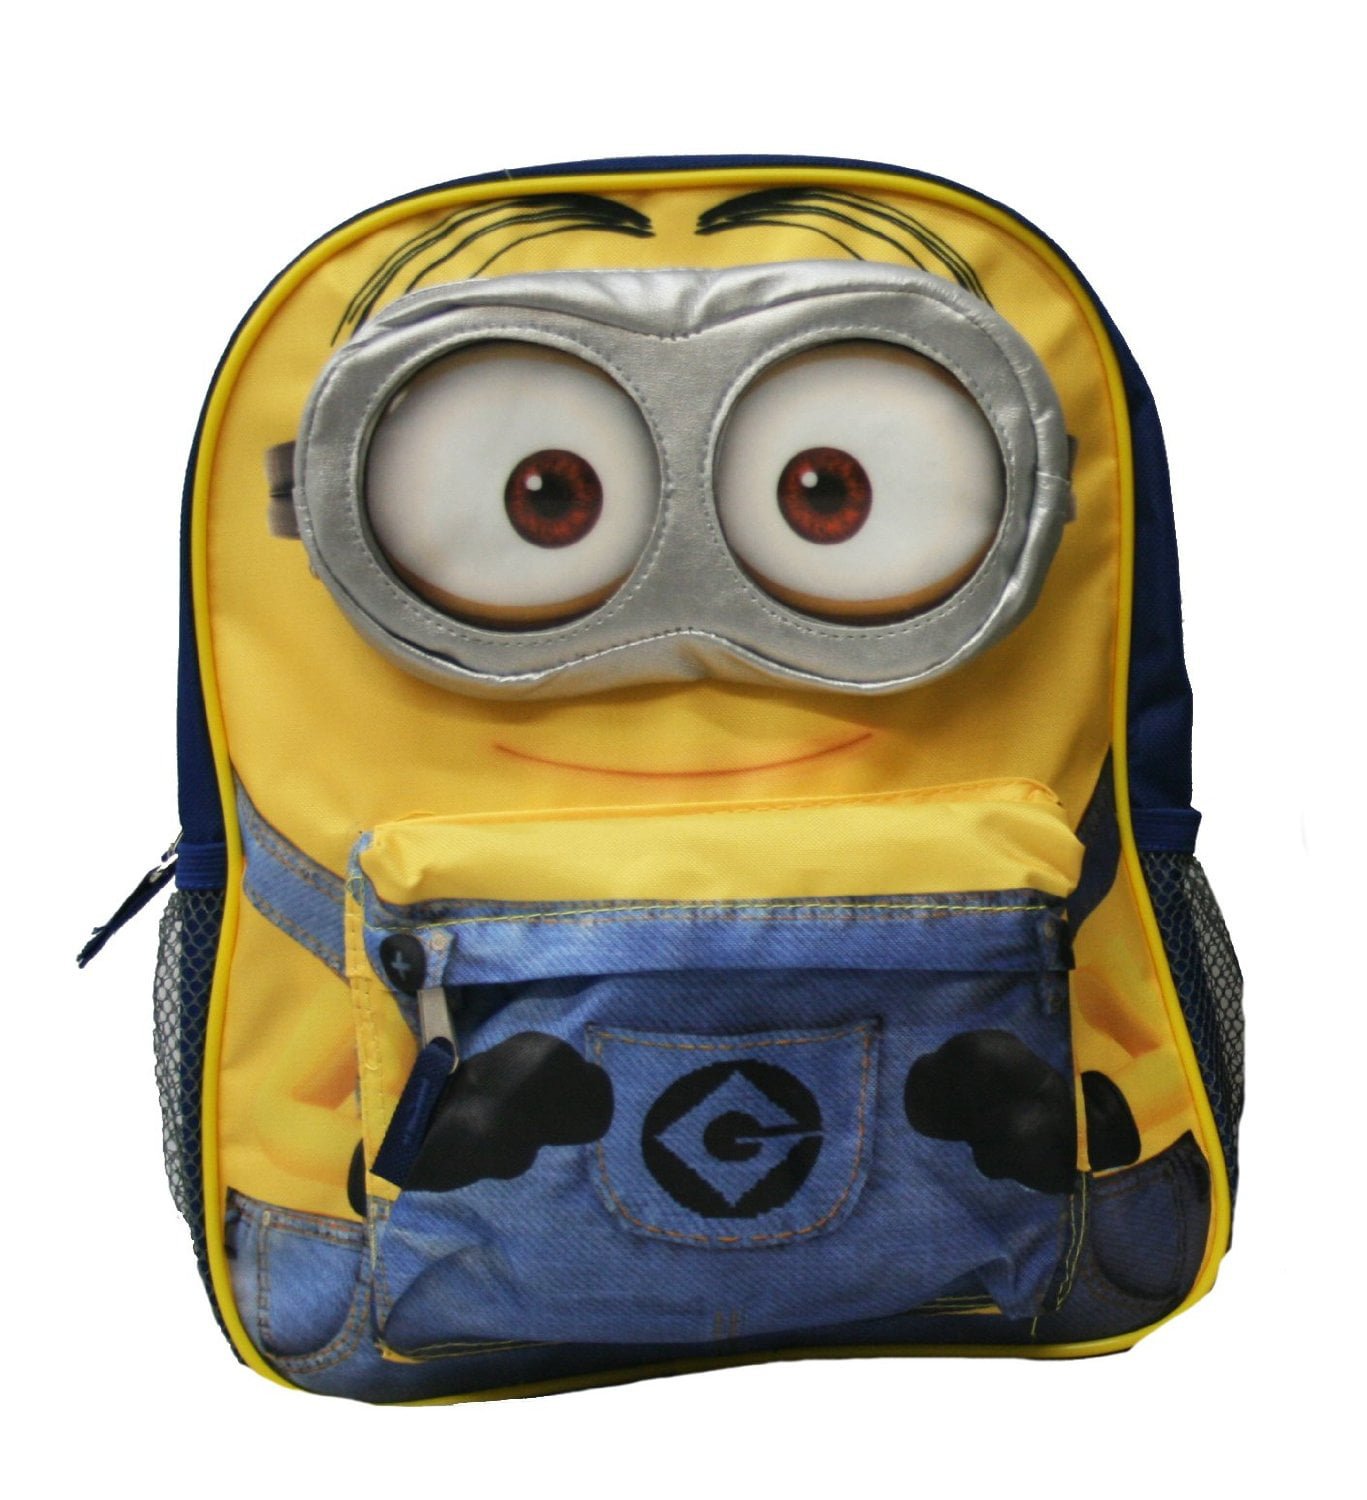 "Small Backpack - Despicable Me 2 - 12"" Minion New School Boys Bag 085562-2"